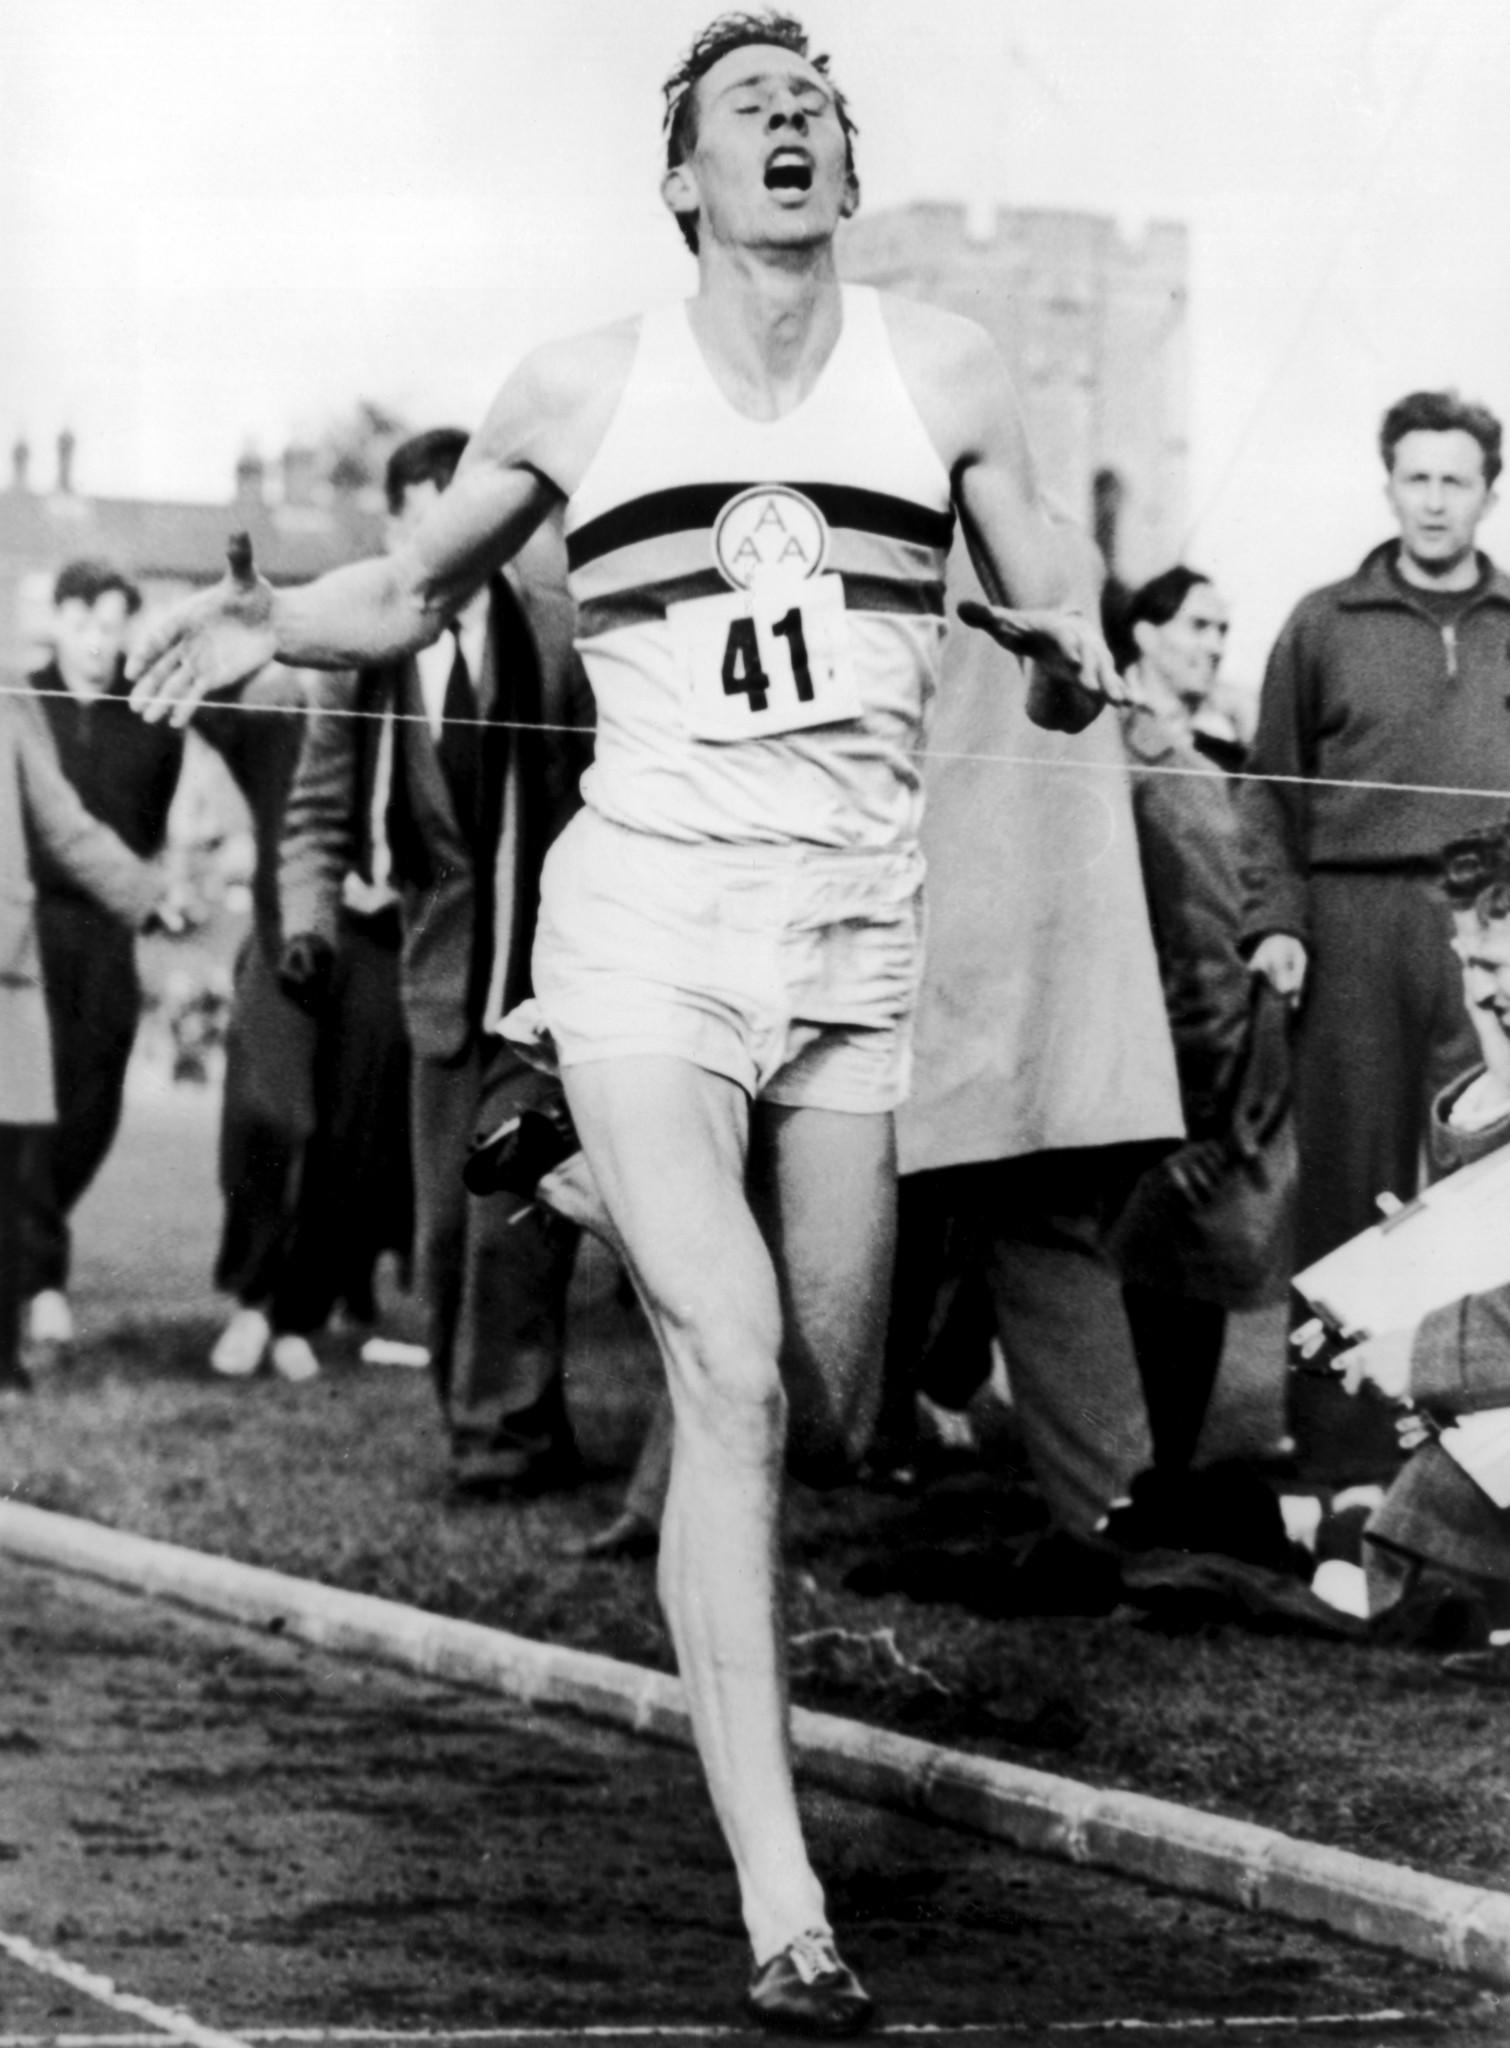 Greatest Achievements In Sports Roger Bannister Broke 4 border=